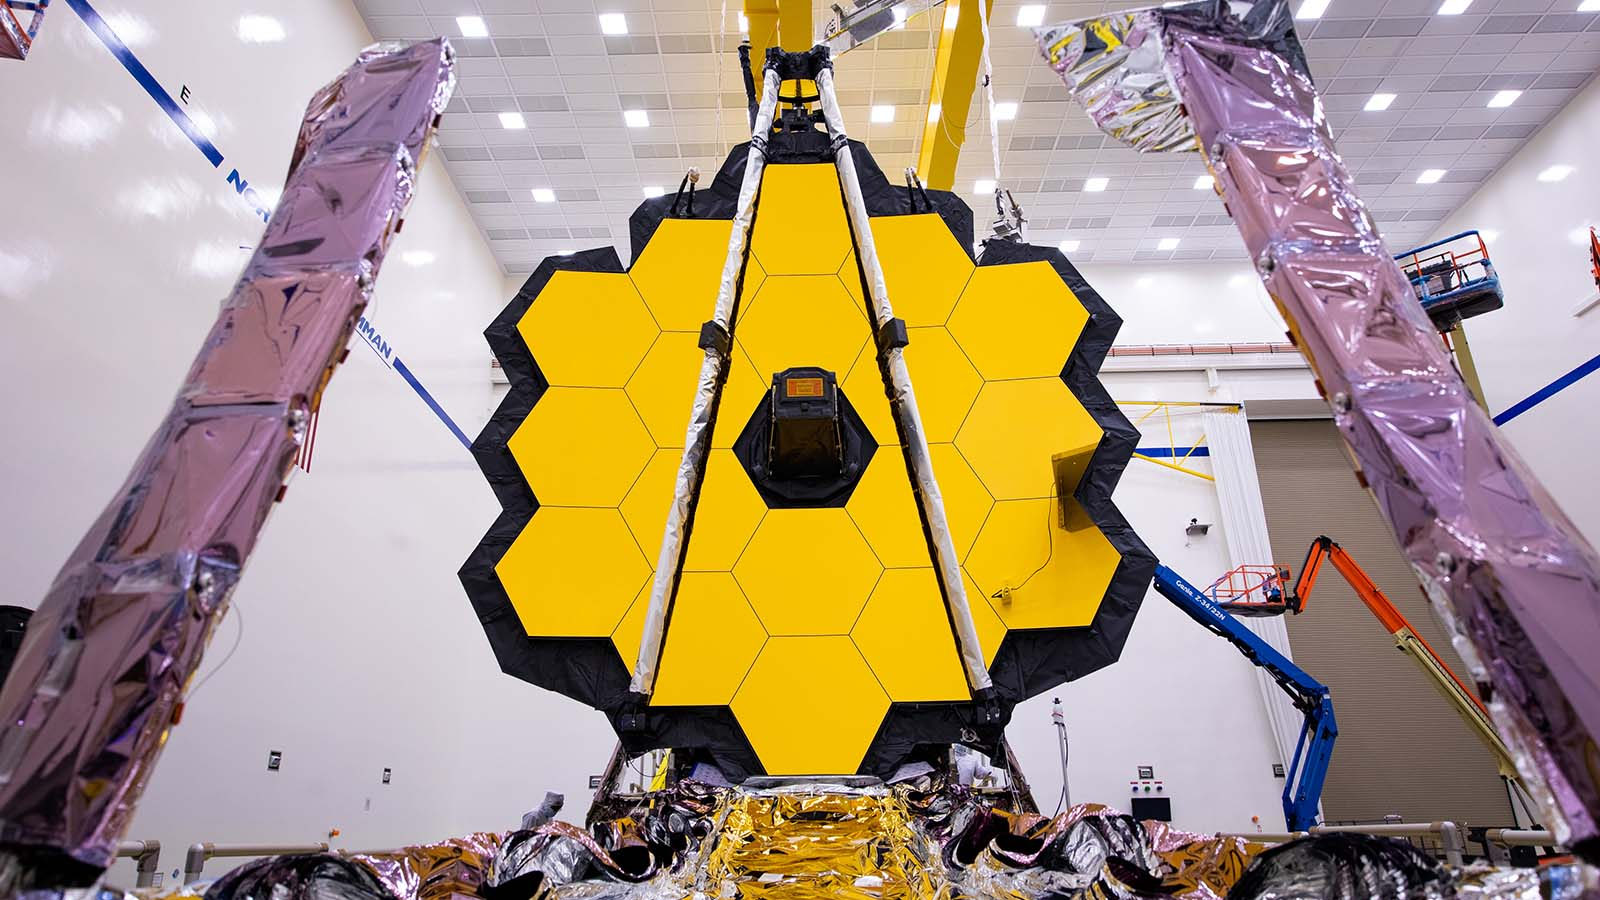 The James Webb Space Telescope In A Clean Room At A NASA Facility